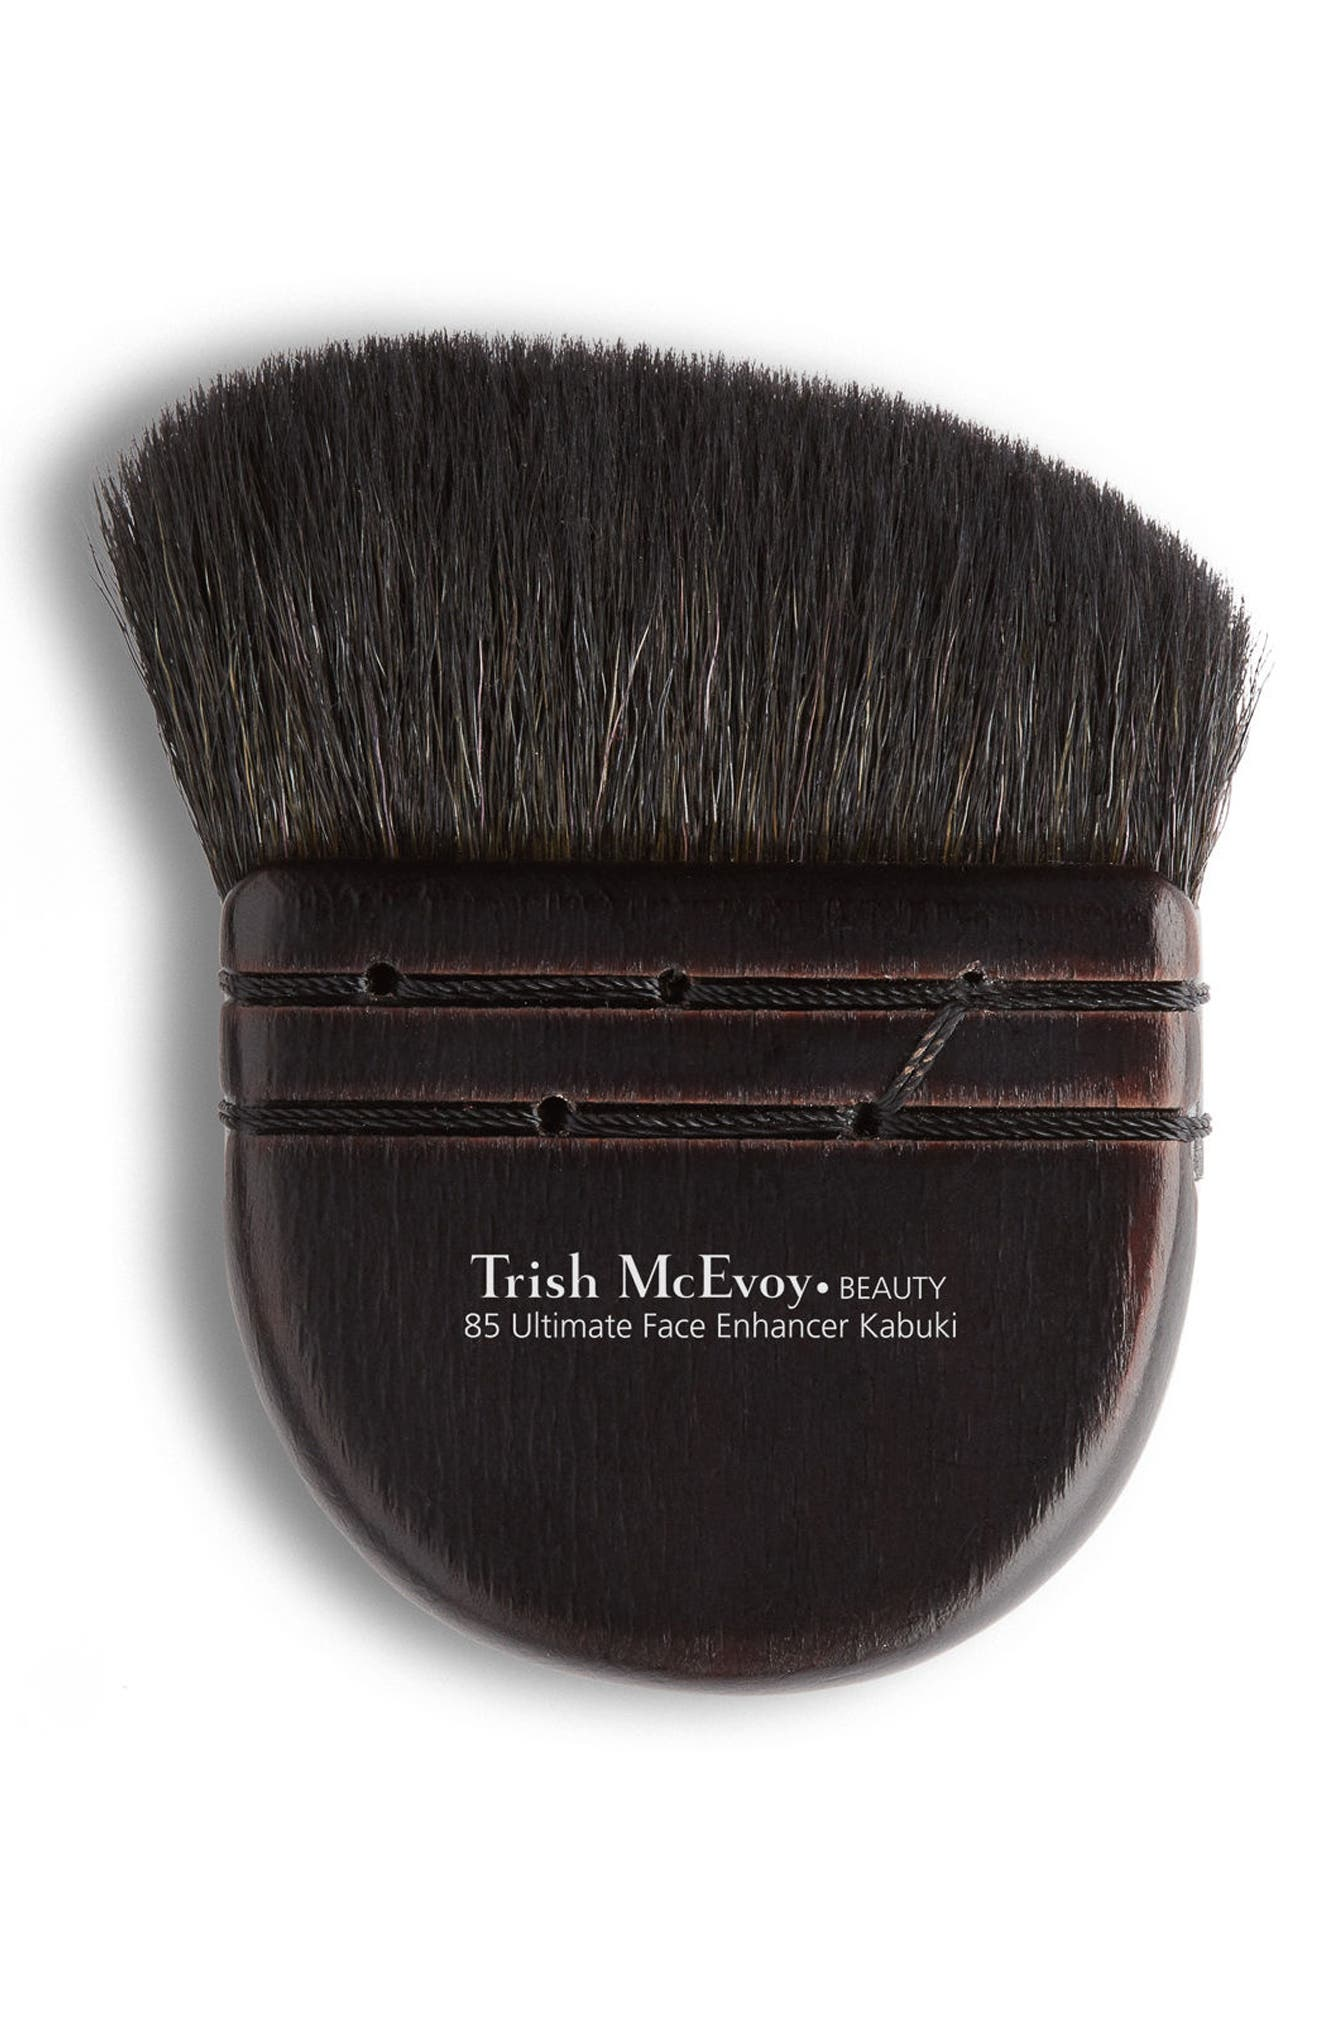 Trish McEvoy #85 Ultimate Face Enhancer Kabuki Brush